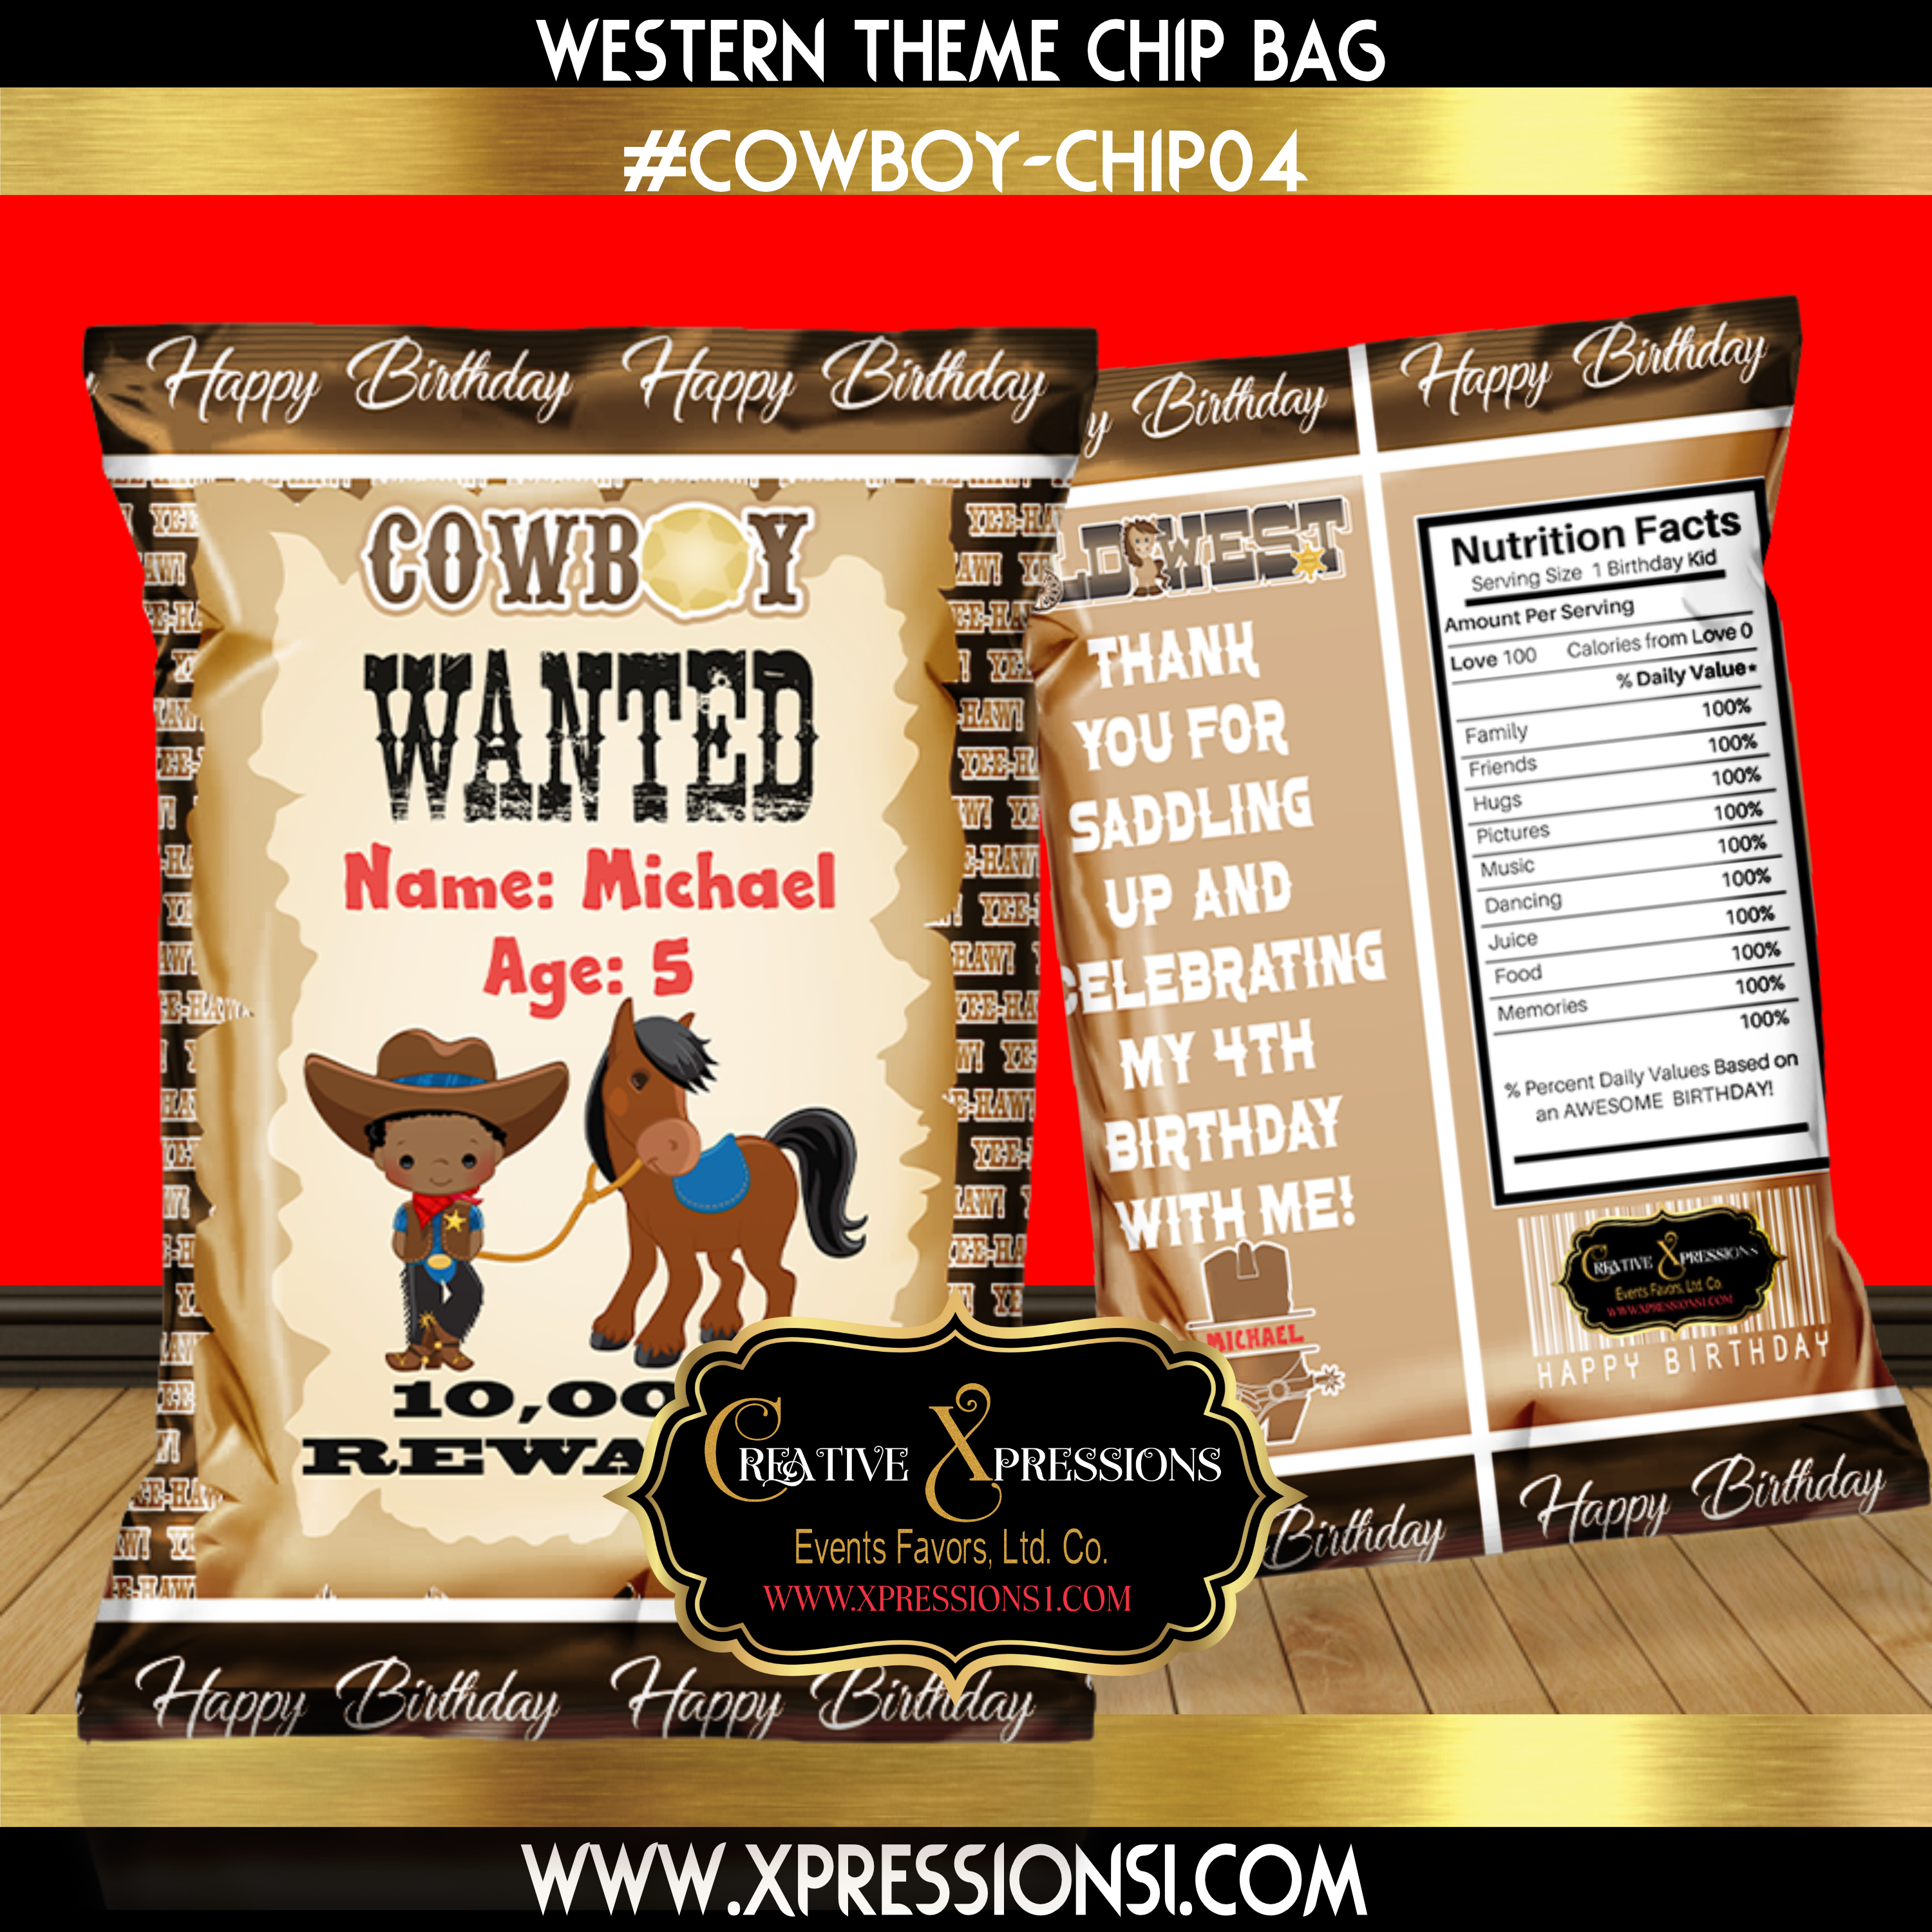 A Wanted Boy Chip Bag